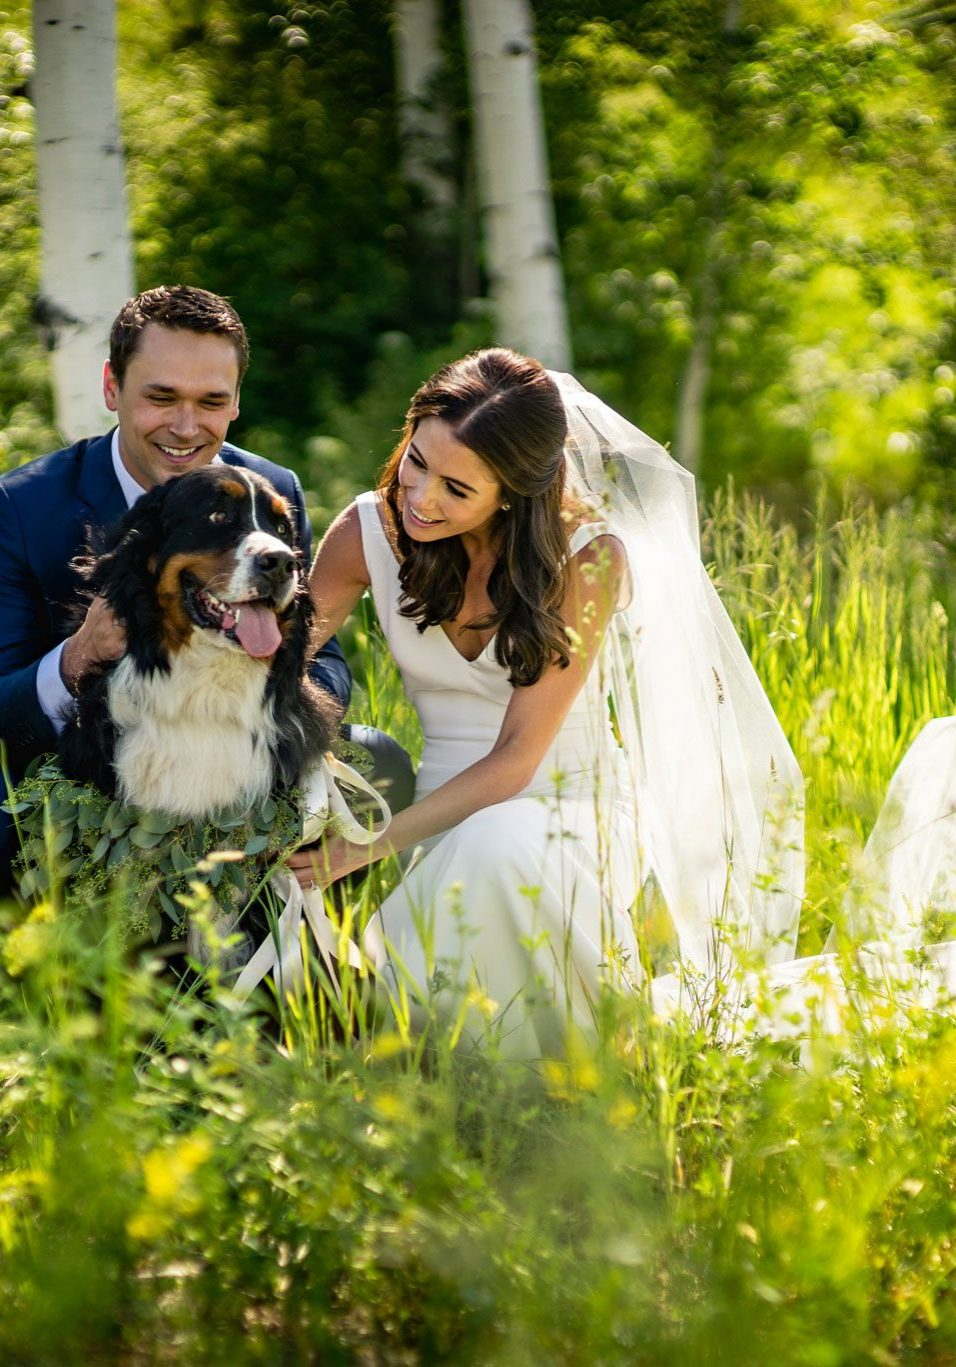 Bride & Groom with dog | Beaver Creek, Colorado Wedding